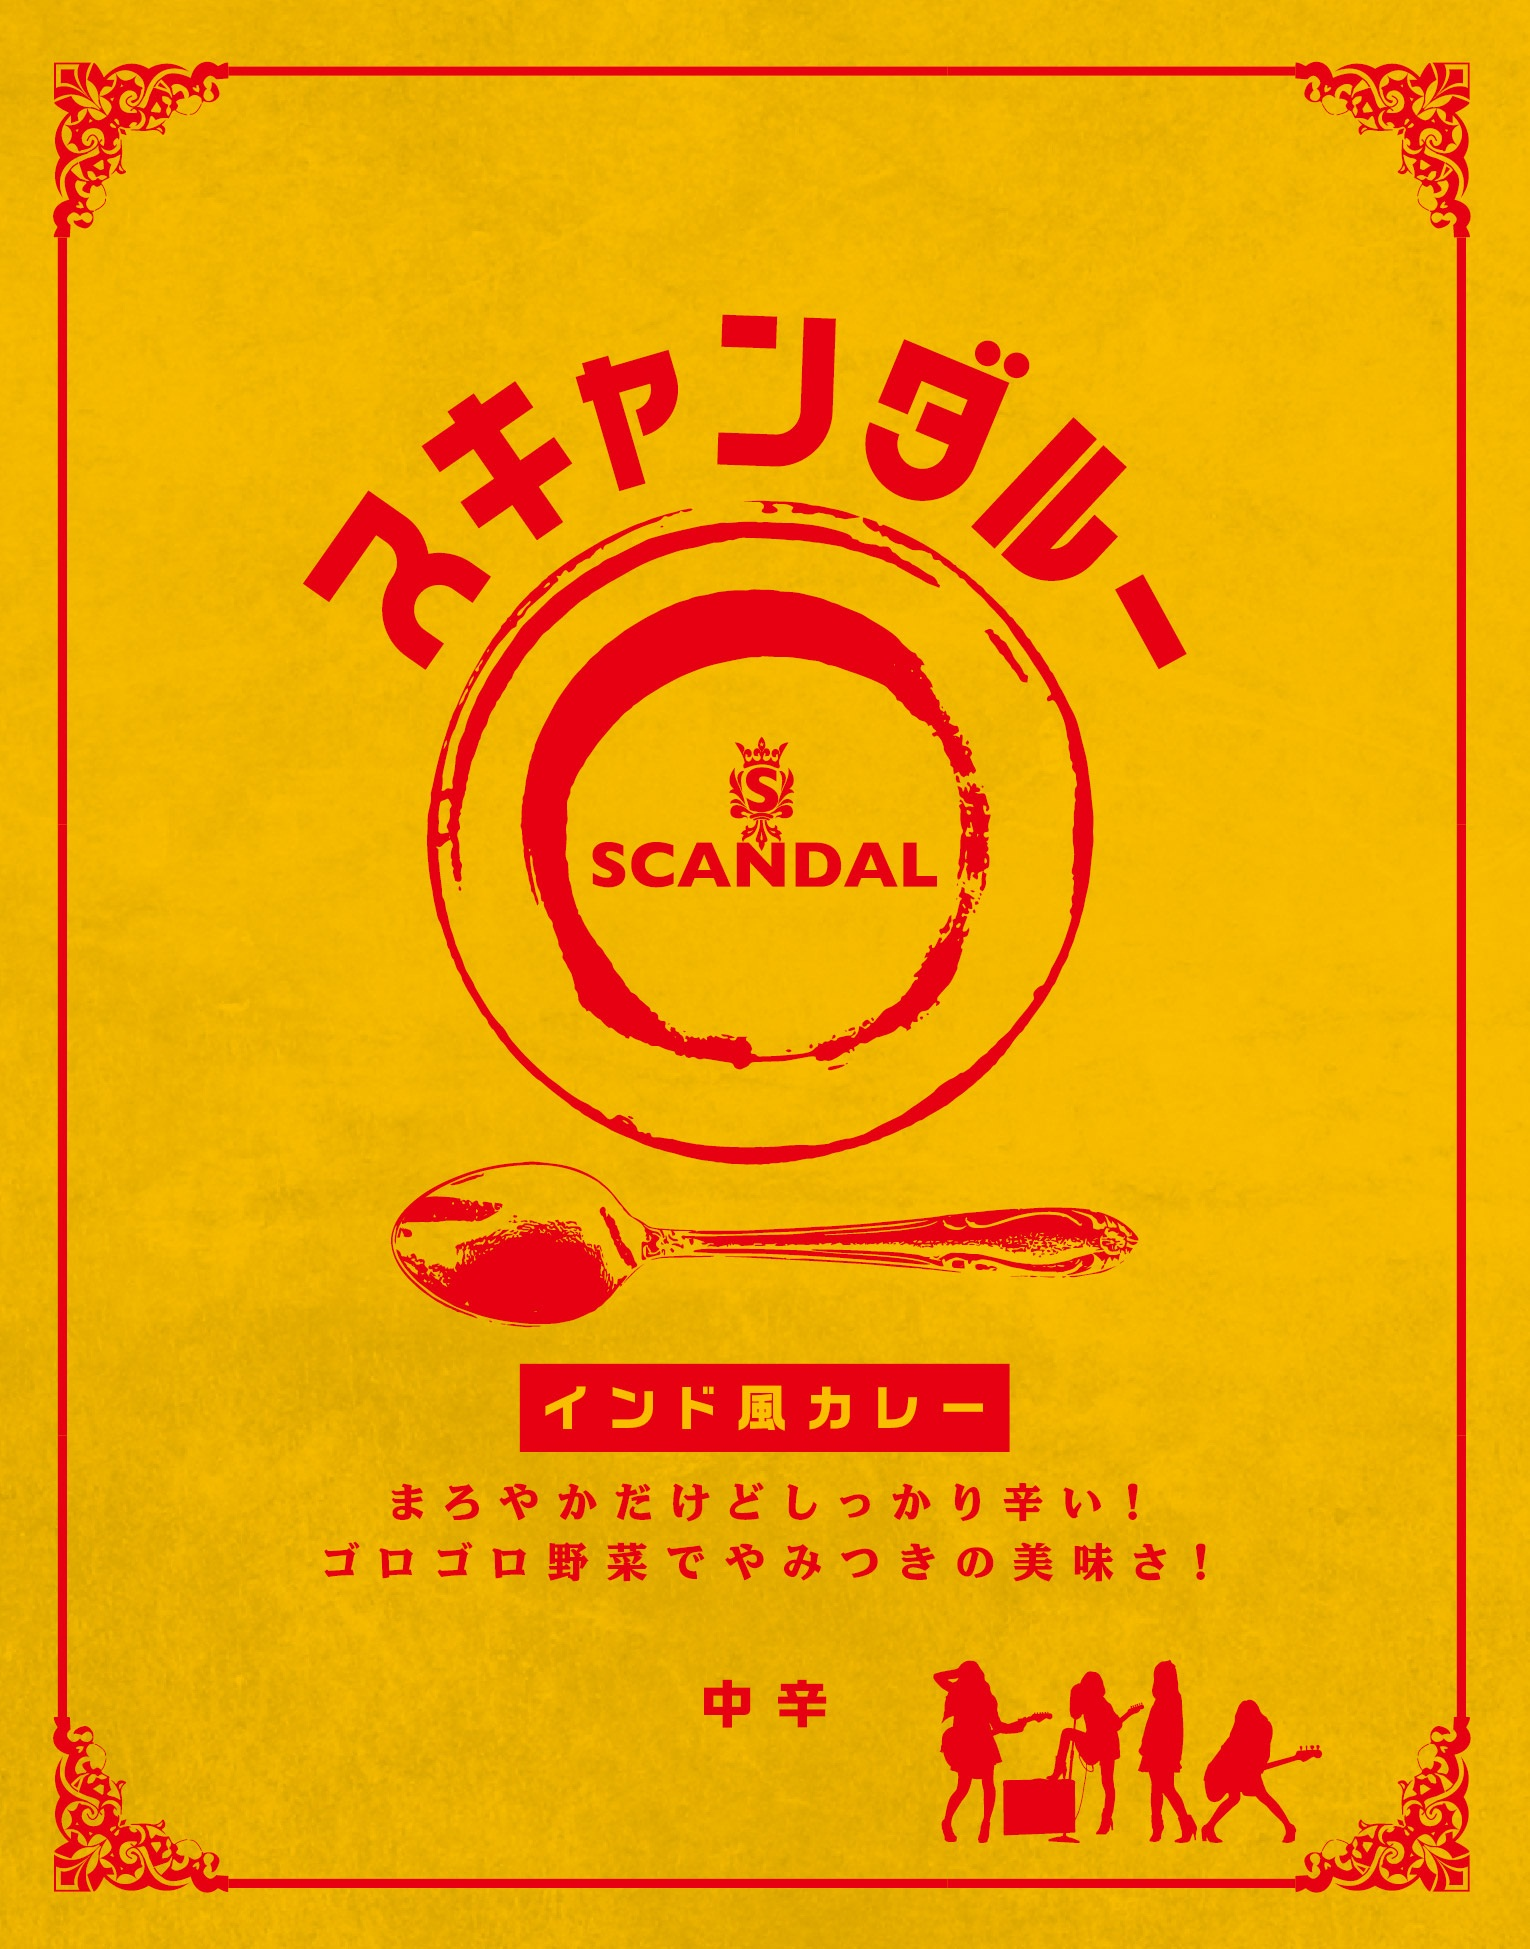 SCANDAL's original curry 「SCANDAROUX」 Original